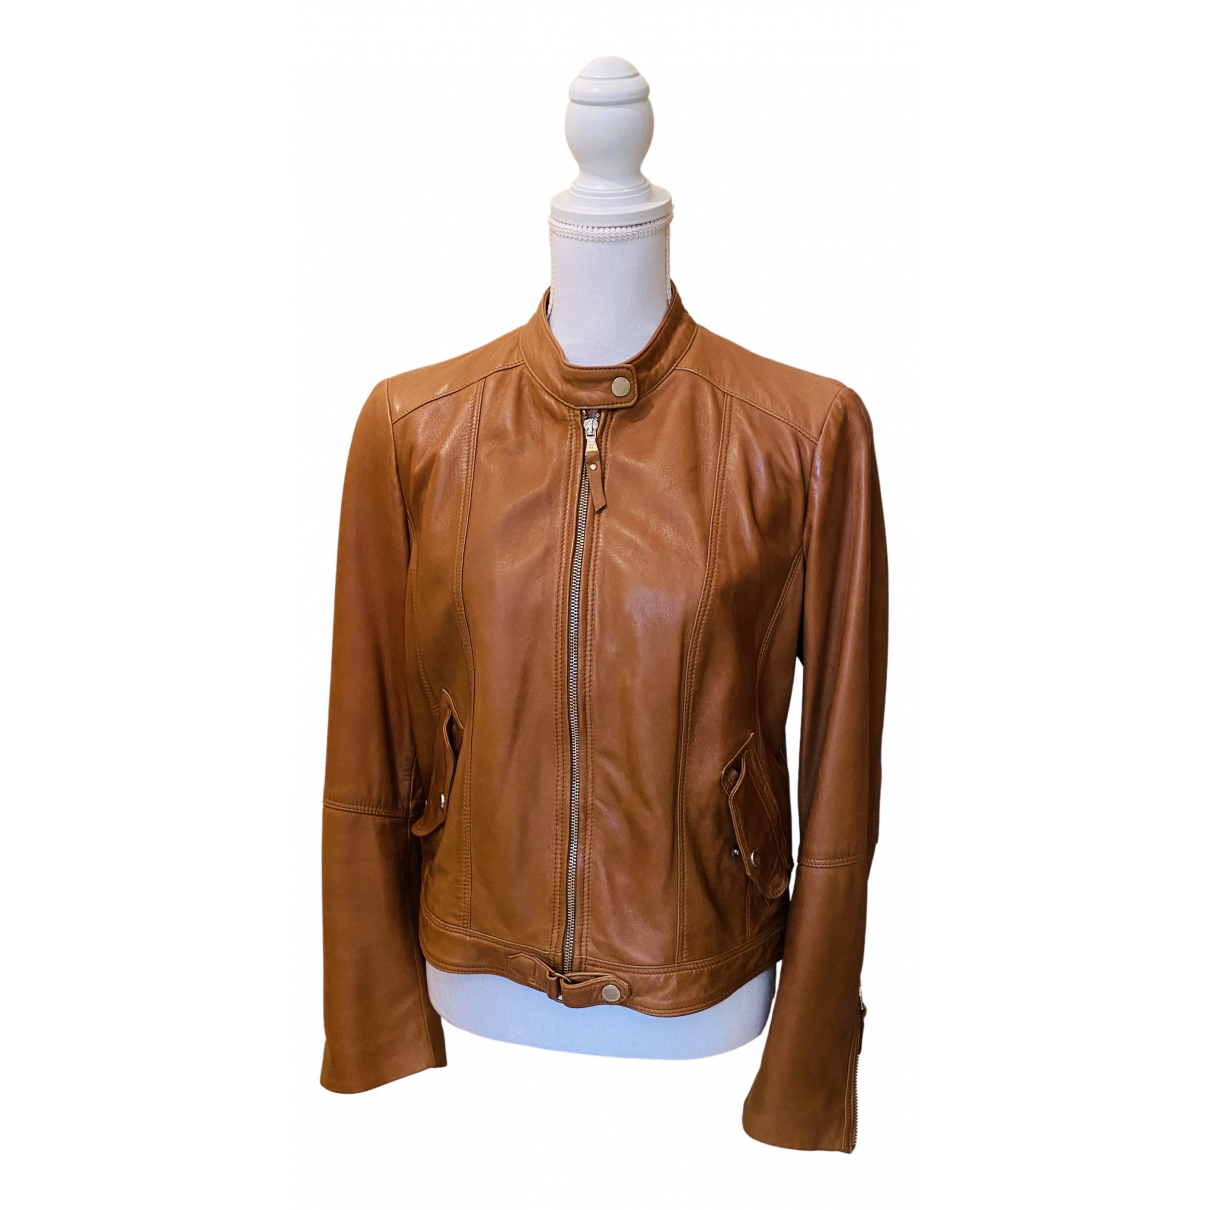 Massimo Dutti N Brown Leather Leather jacket for Women XL International